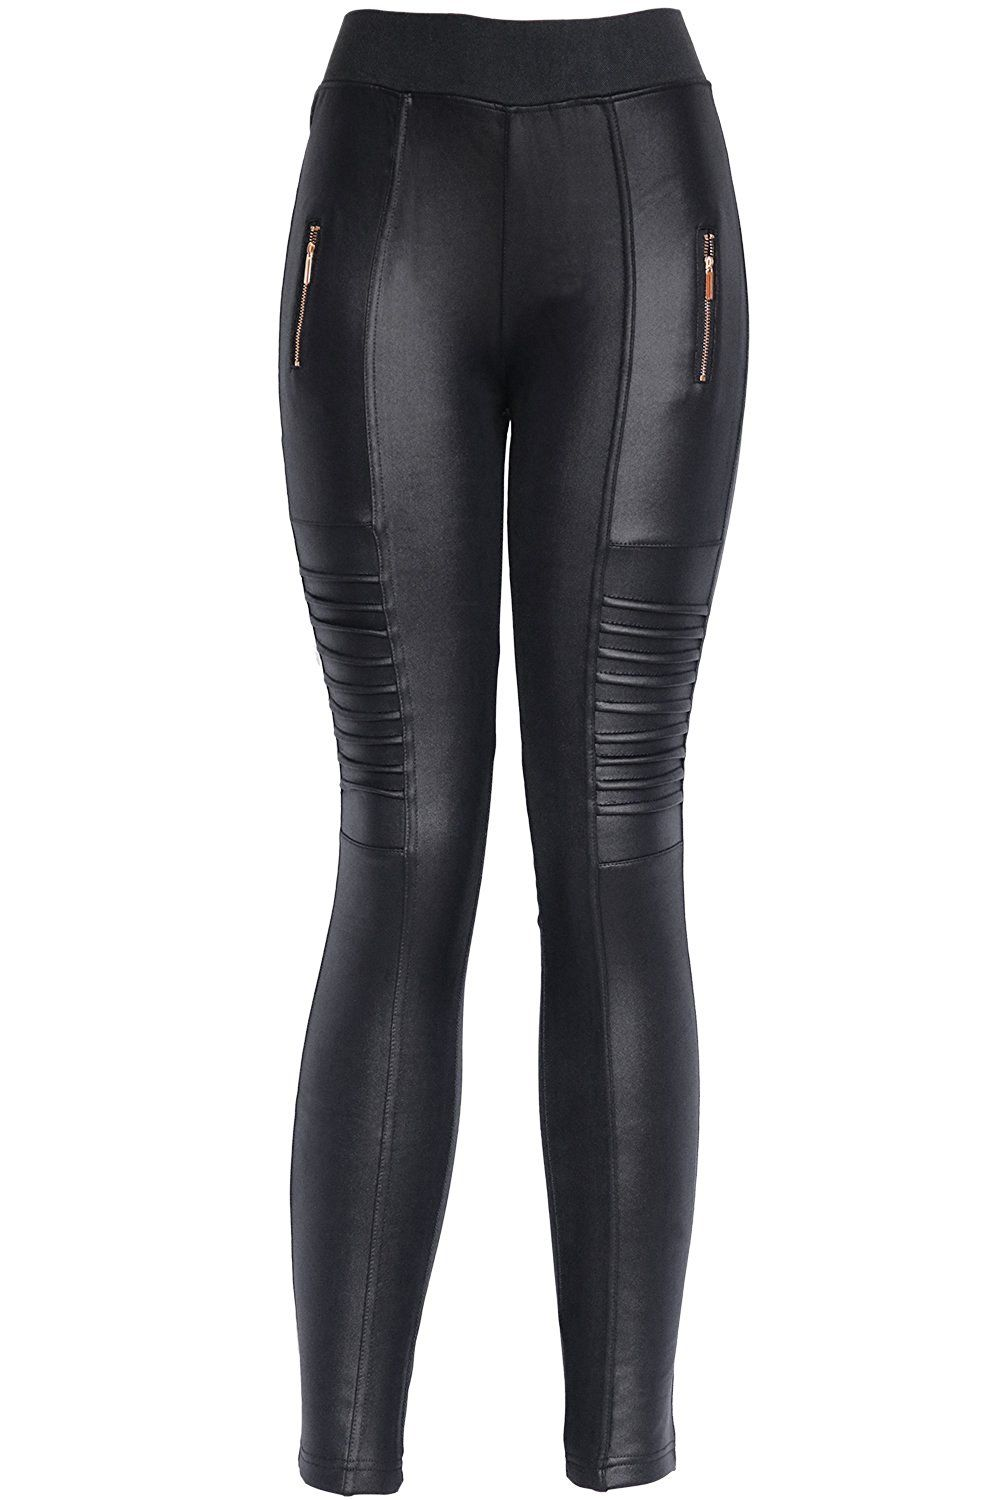 a335a1588c636a KMystic Winter Biker Faux Leather Pants (Small/Medium, Black) at Amazon  Women's Clothing store: